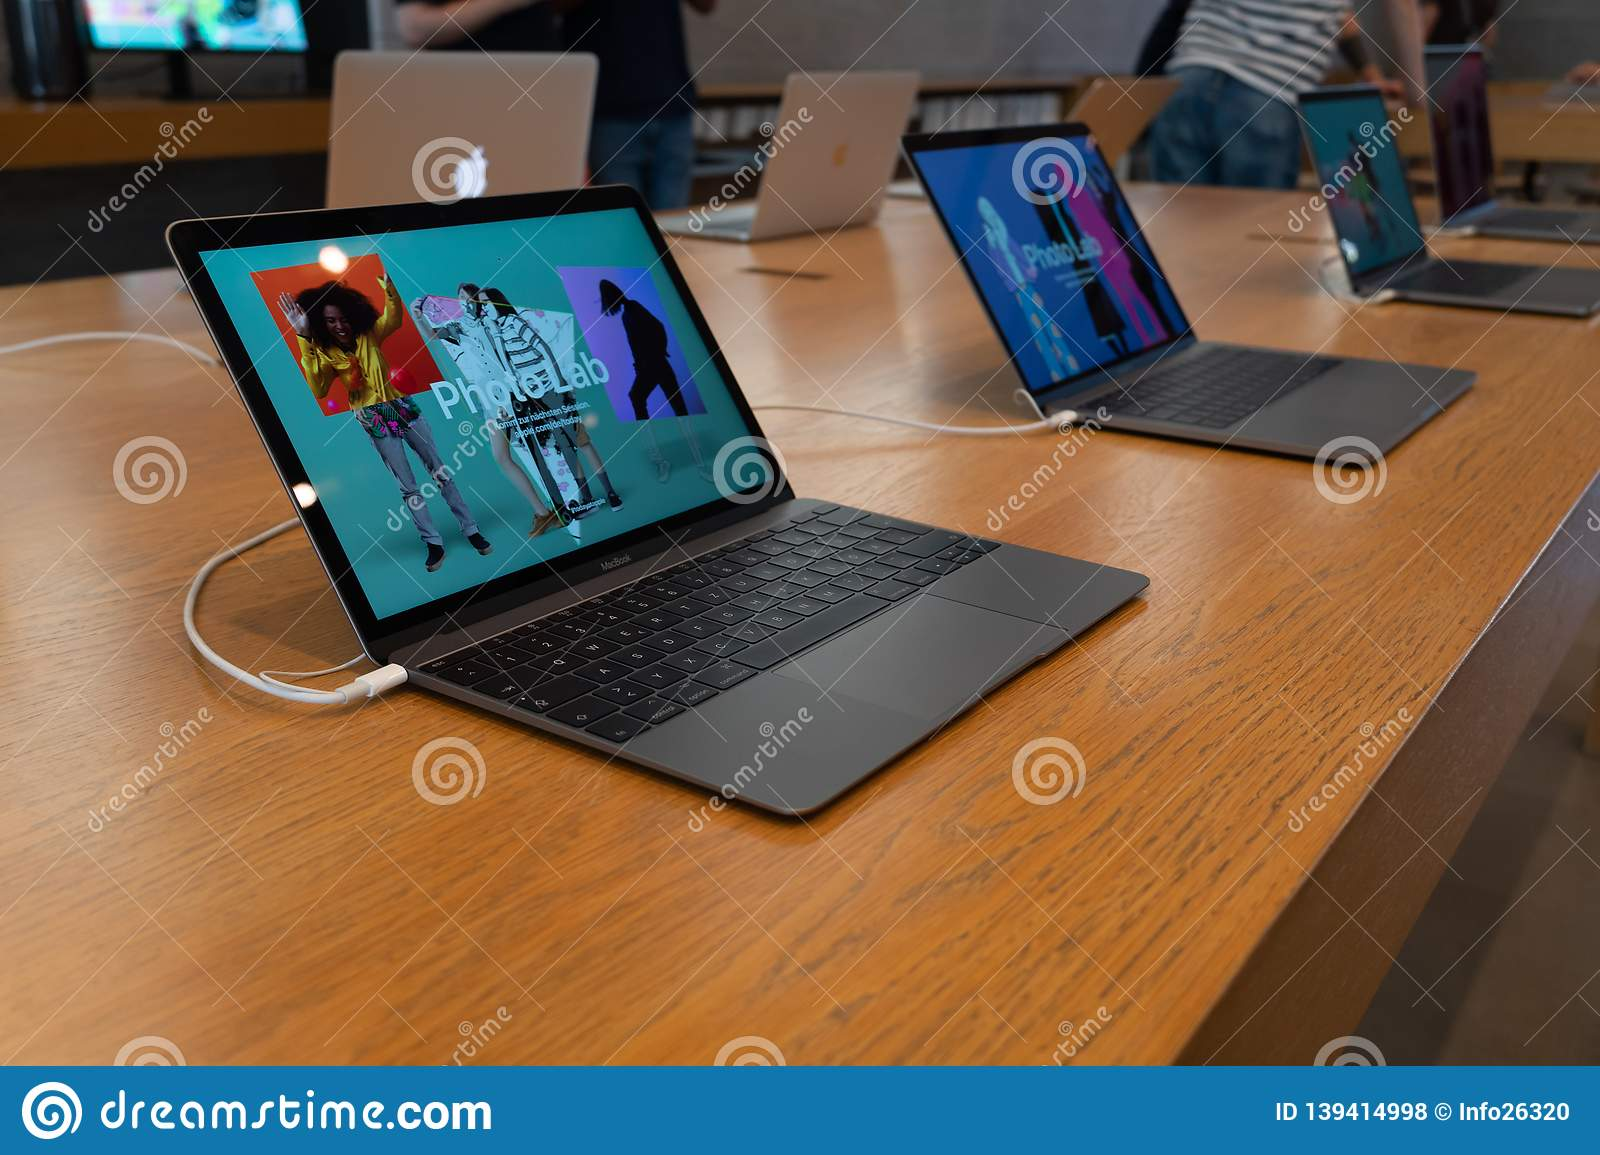 Apple computers and prices